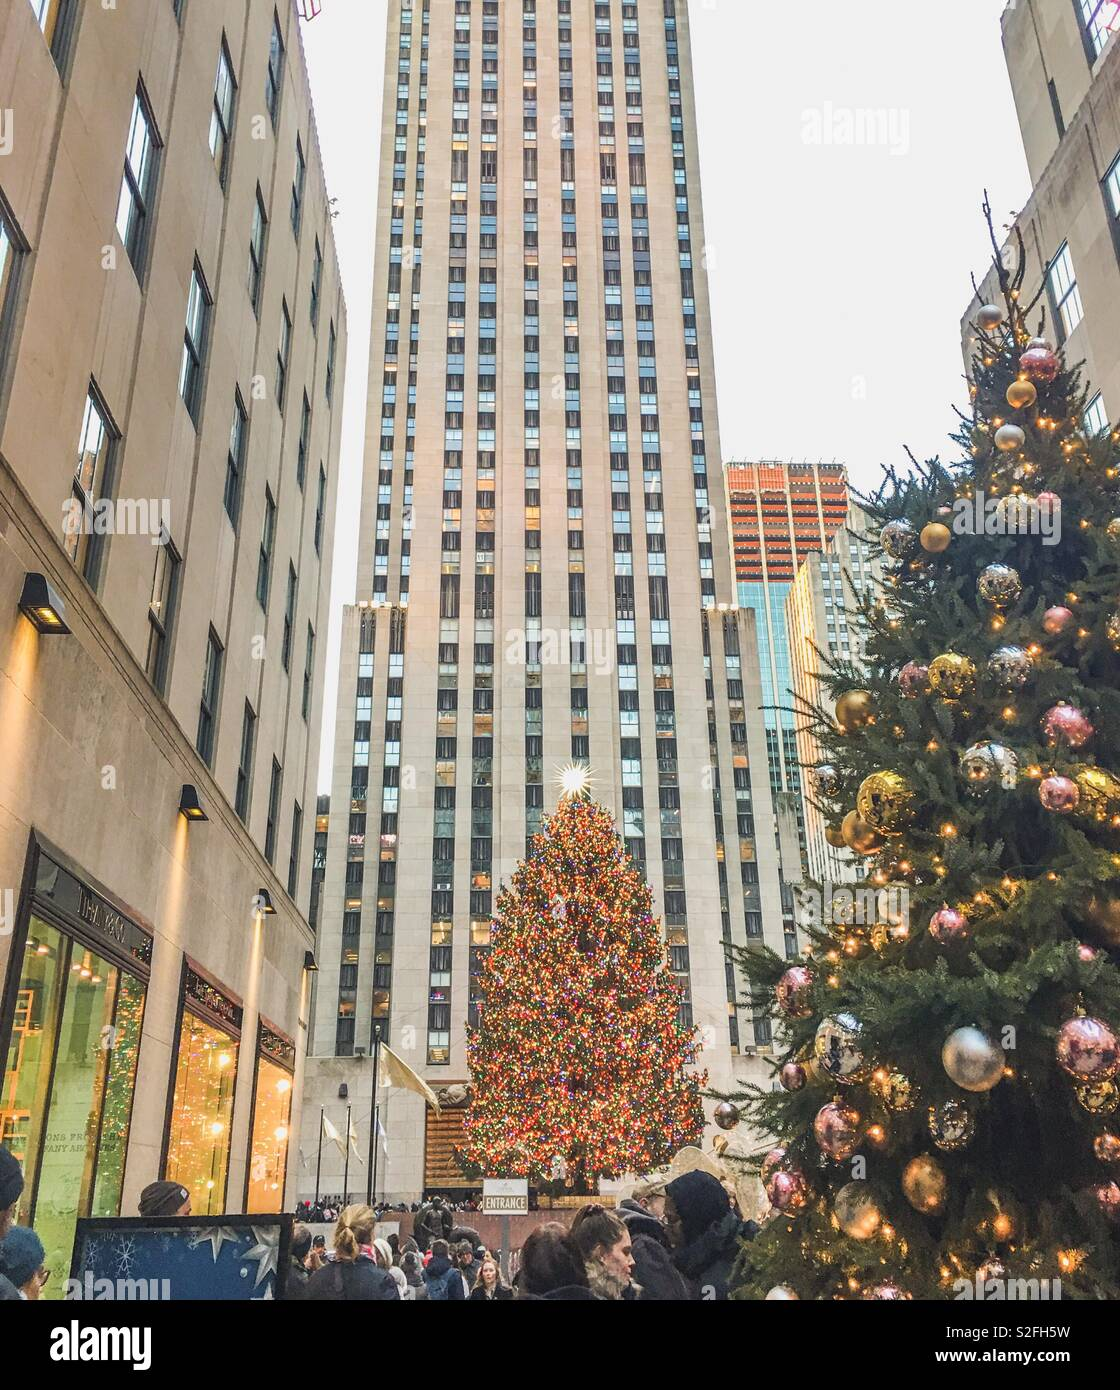 19 December 2018 New York NY: visitors enjoy the Christmas Tree lit up at Rockefeller Center. Stock Photo